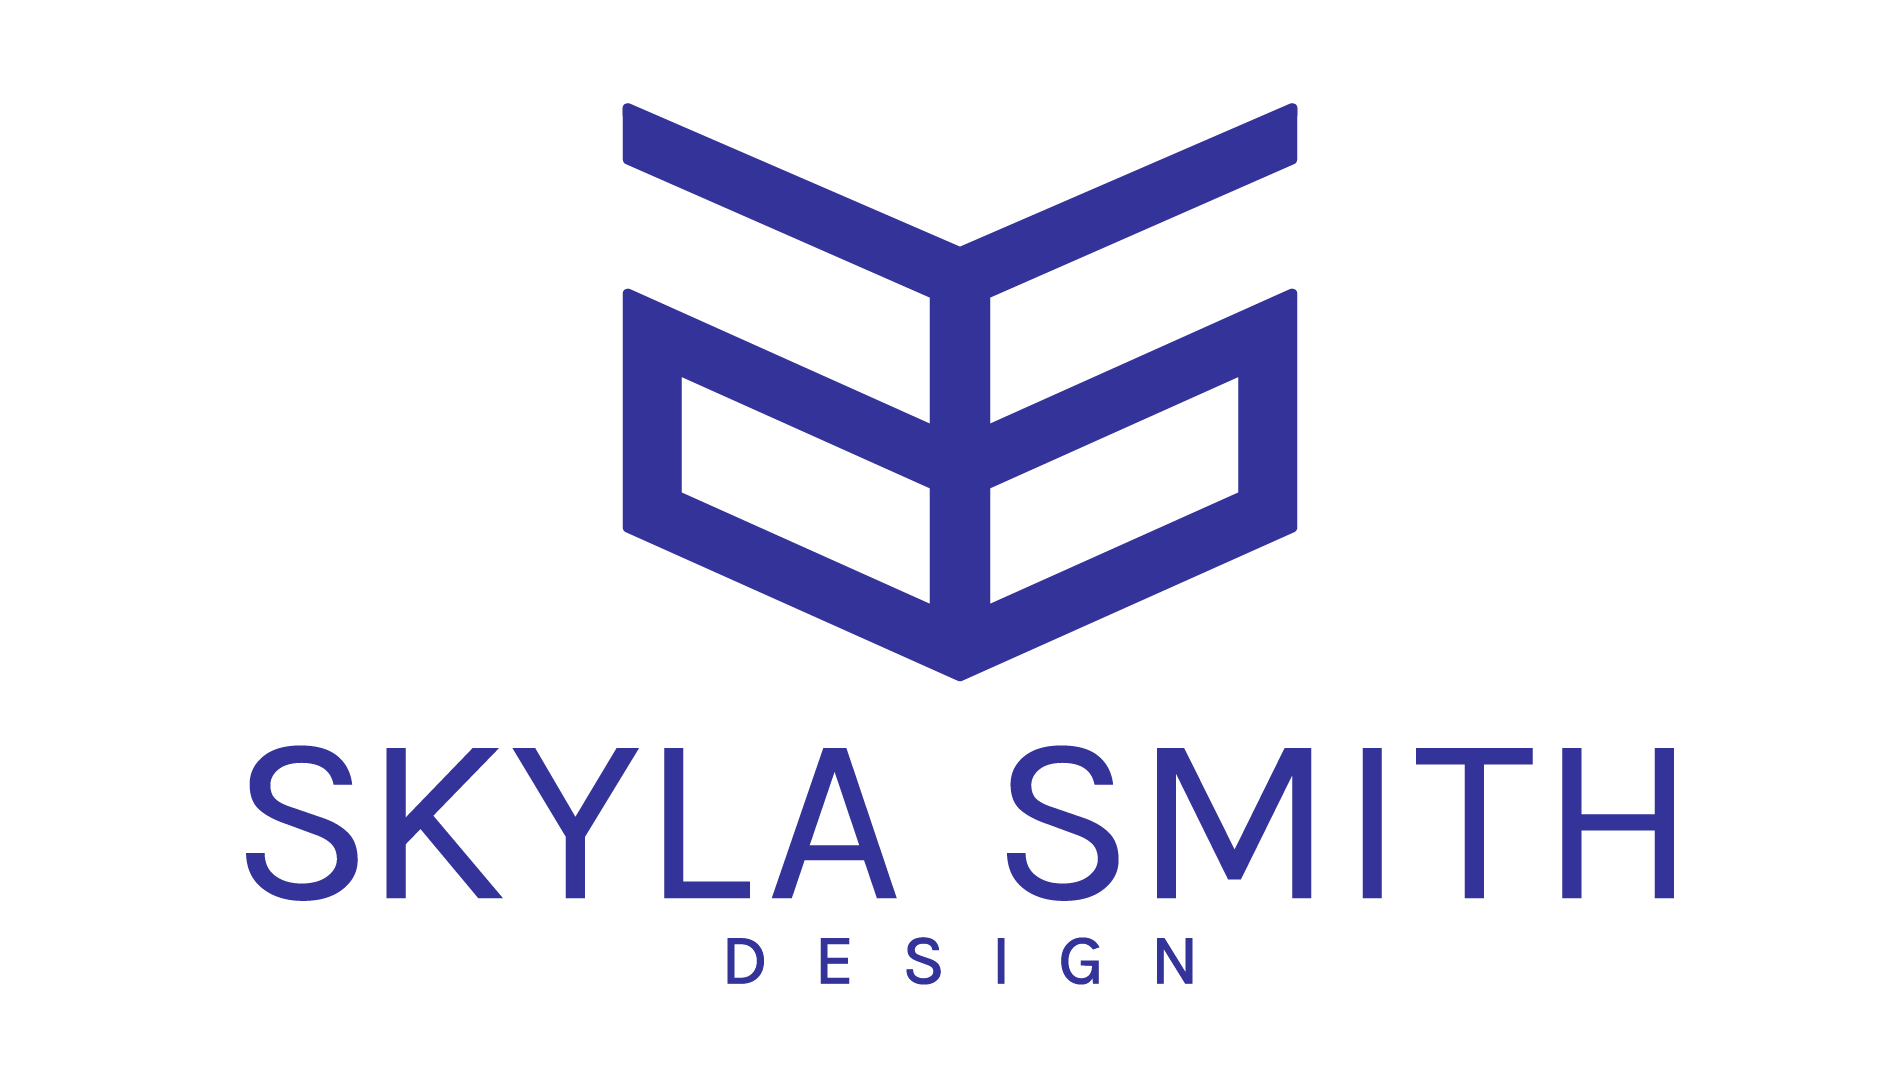 Skyla Smith Design